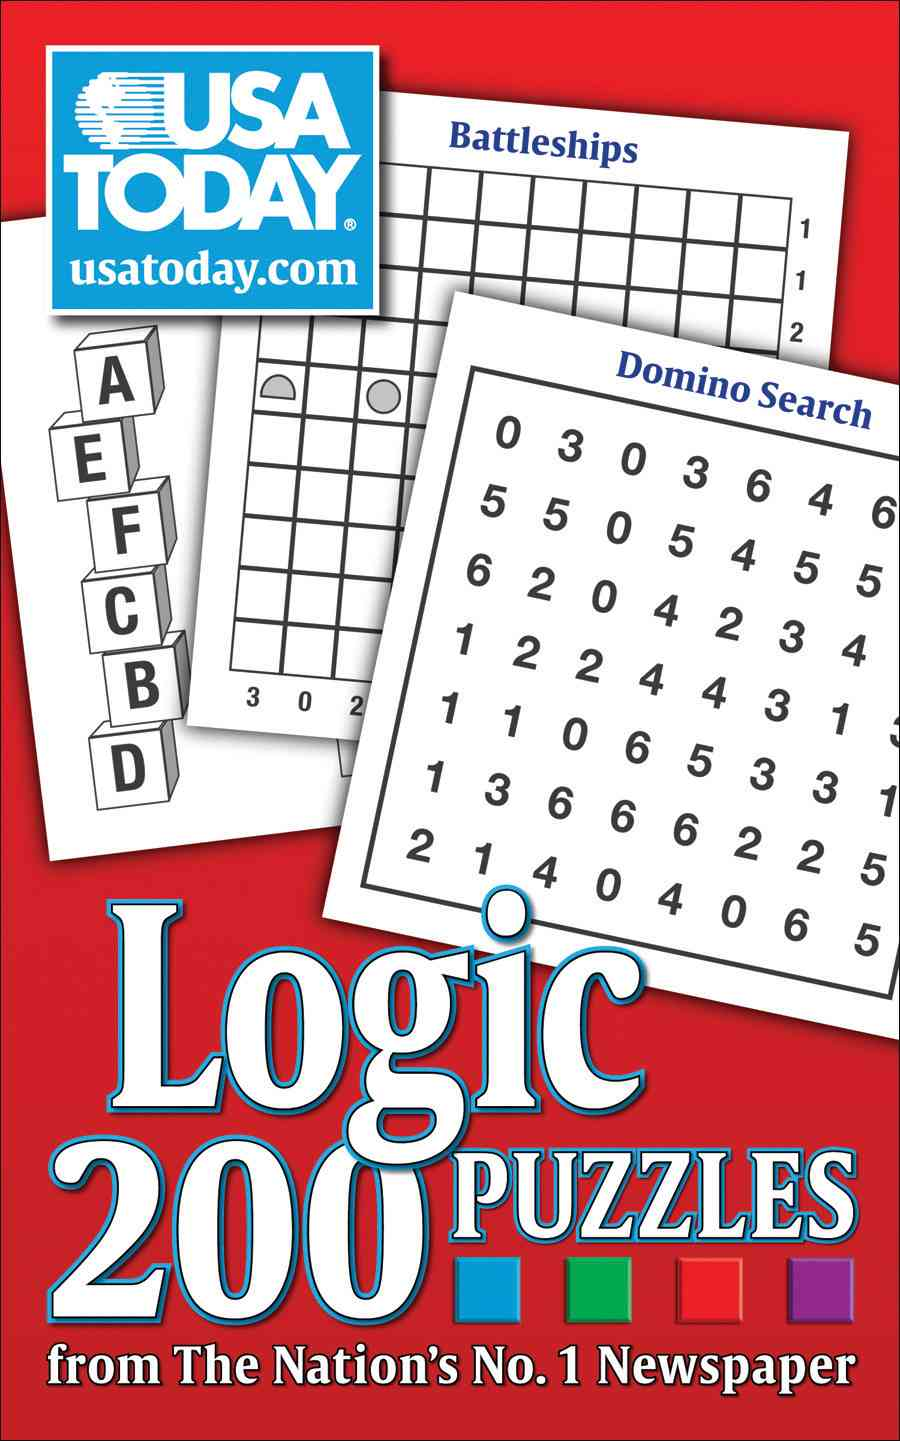 USA Today Logic Puzzles: 200 Puzzles from the Nation's No. 1 Newspaper (Paperback)